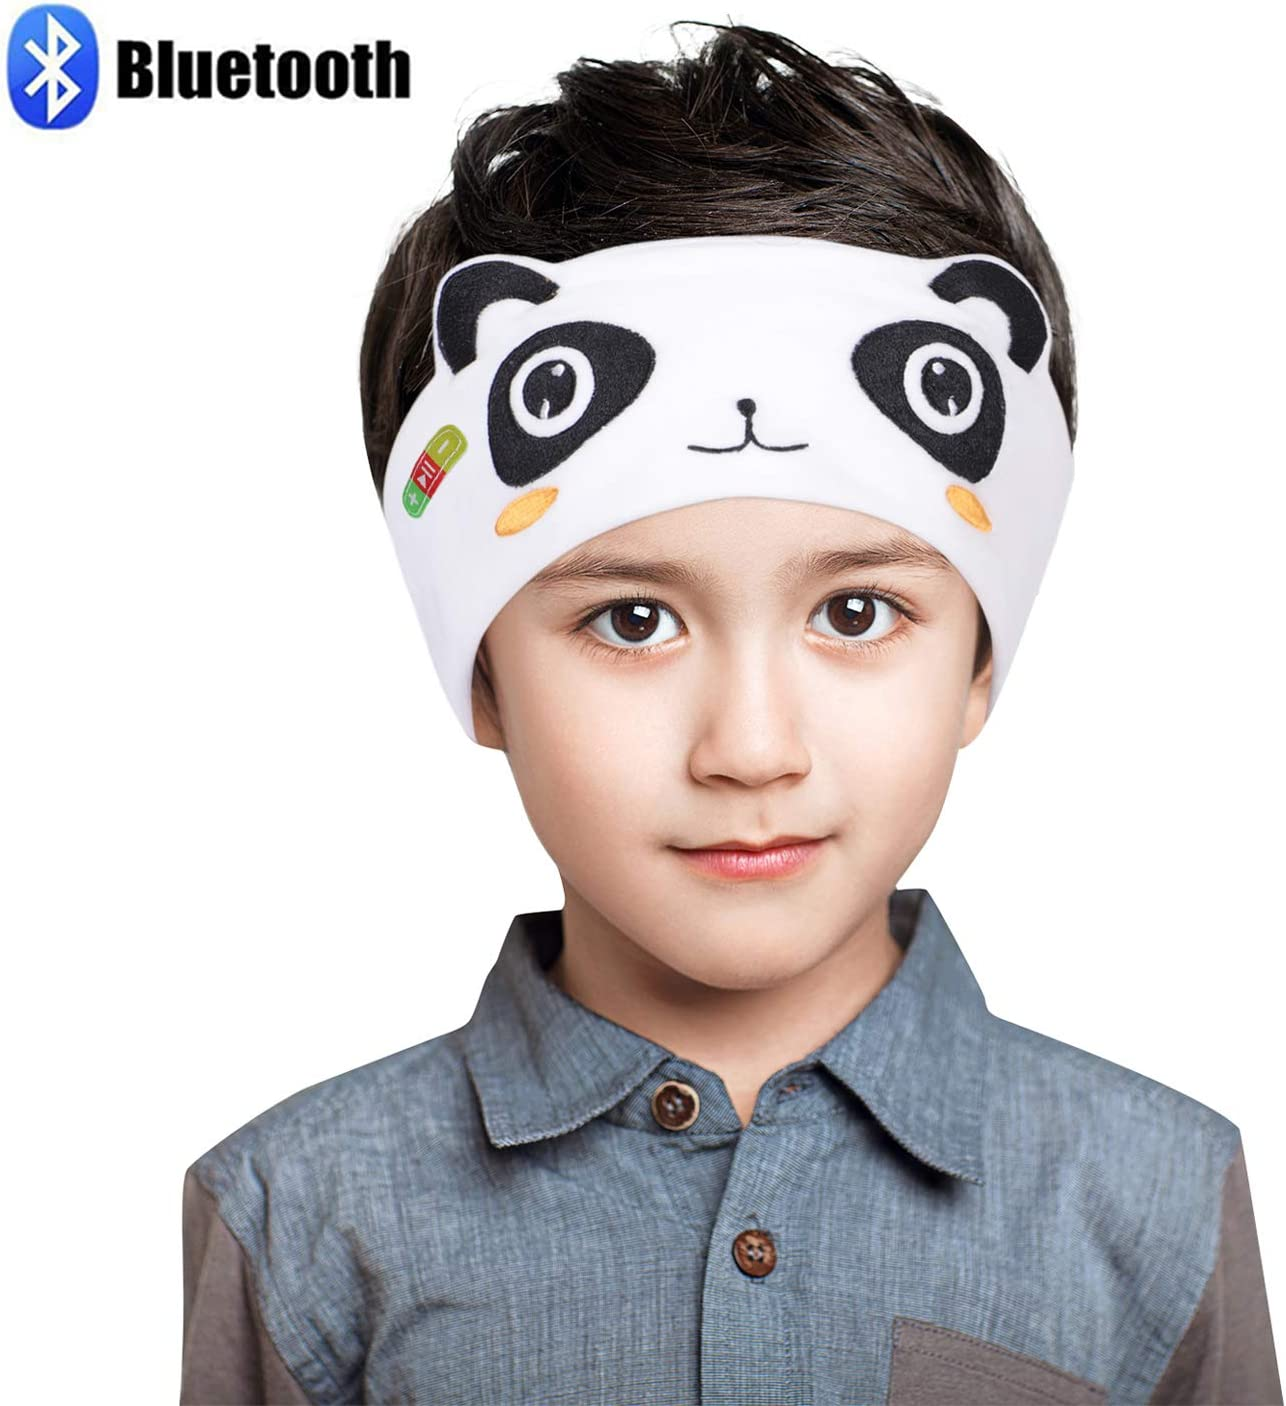 Homelove Kids Wireless Bluetooth Headphones, Hi-Fi Stereo Wireless Headset,with Built-in Mic, Soft Fleece Headband or Patch for School or Home Panda